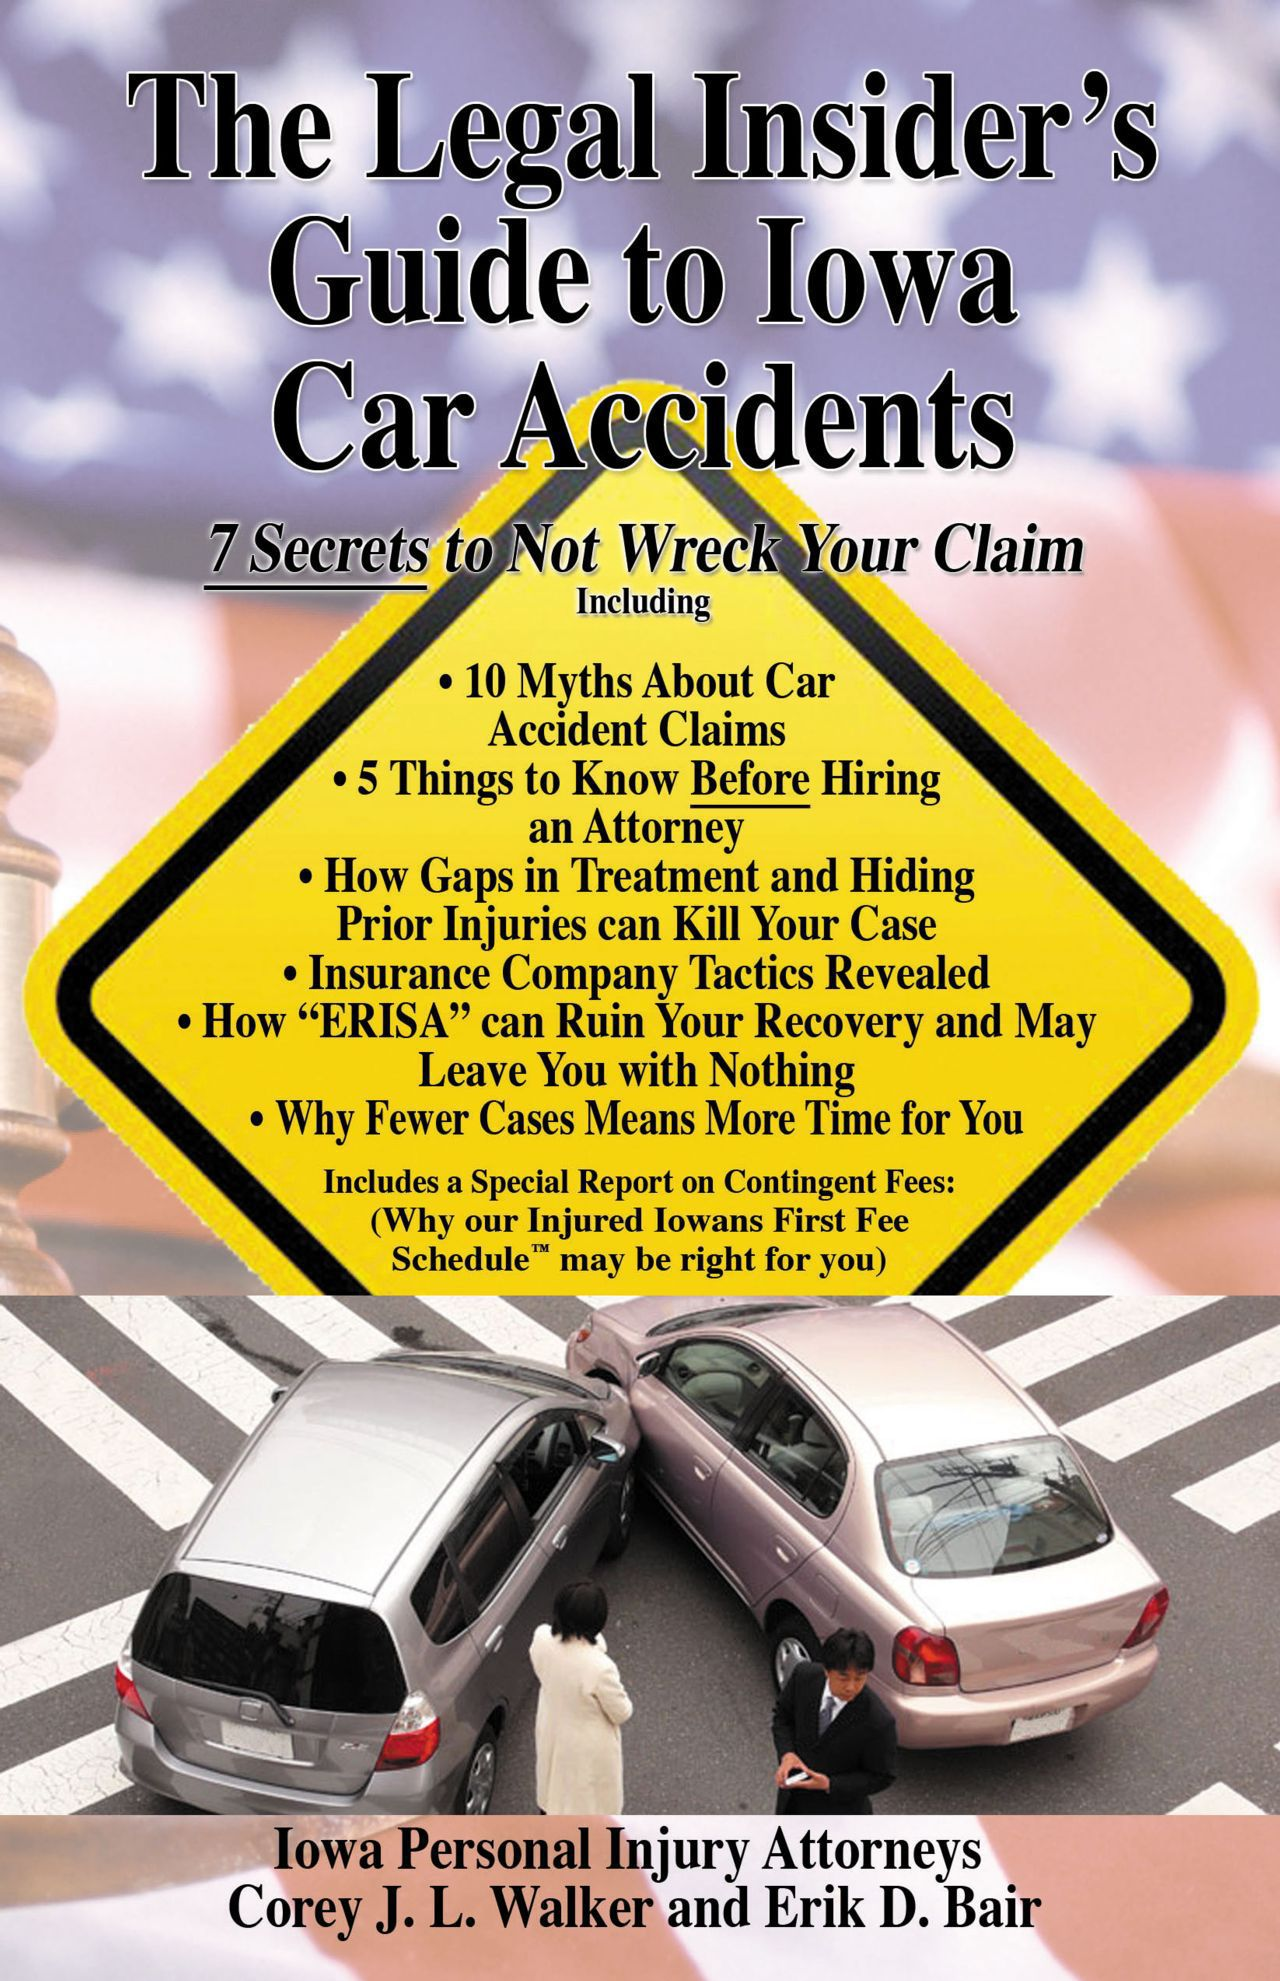 The Legal Insider's Guide to Iowa Car Accidents